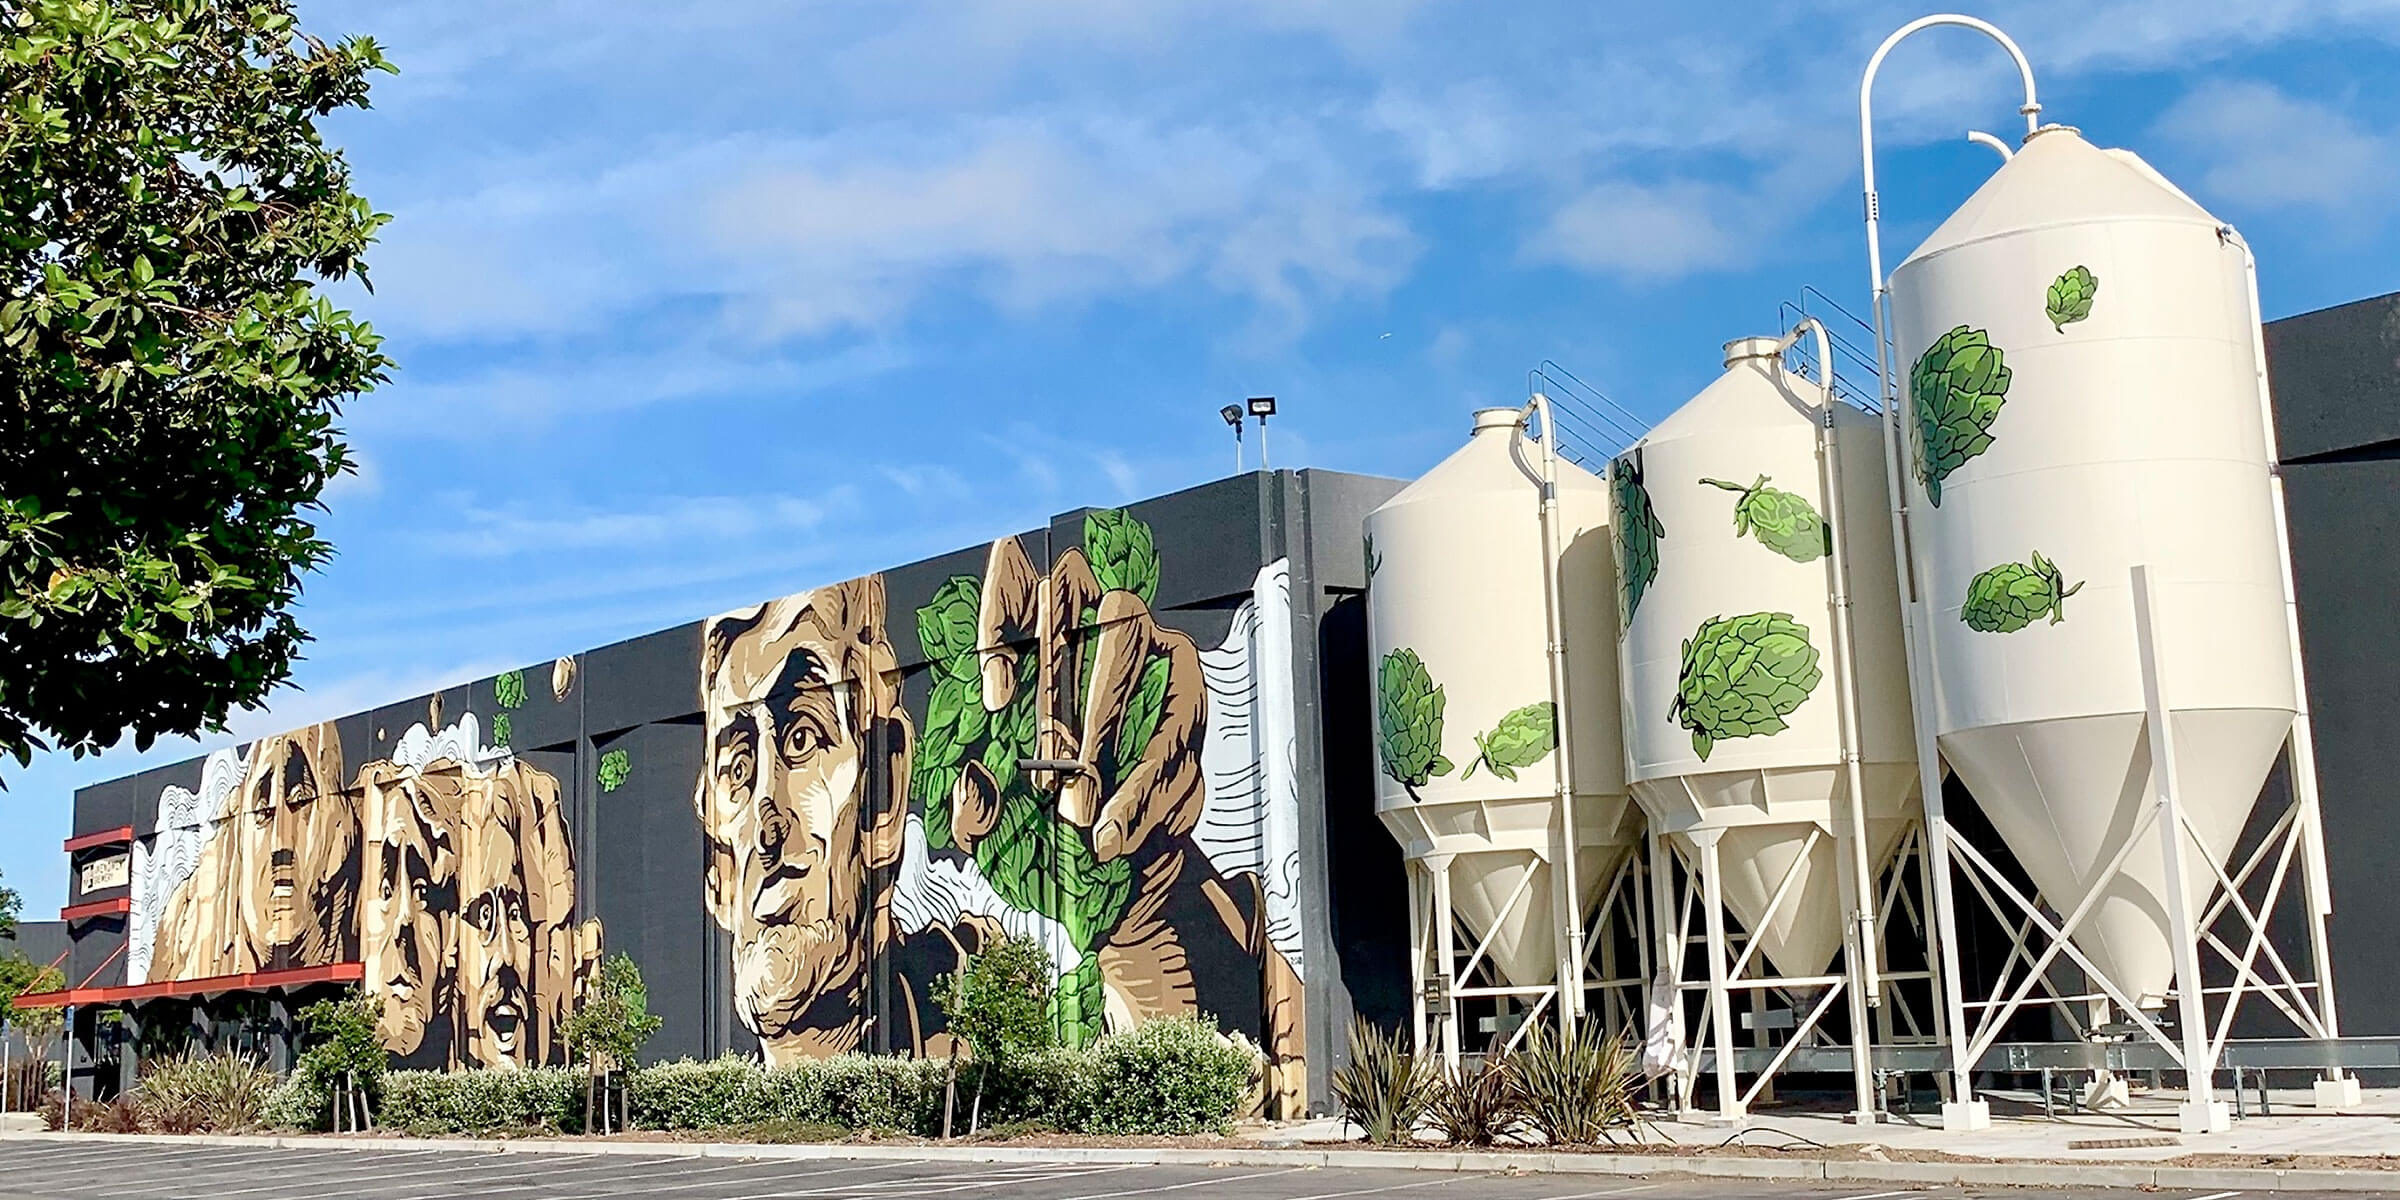 The mural painted on the outside of the 21st Amendment Brewery in San Leandro, California